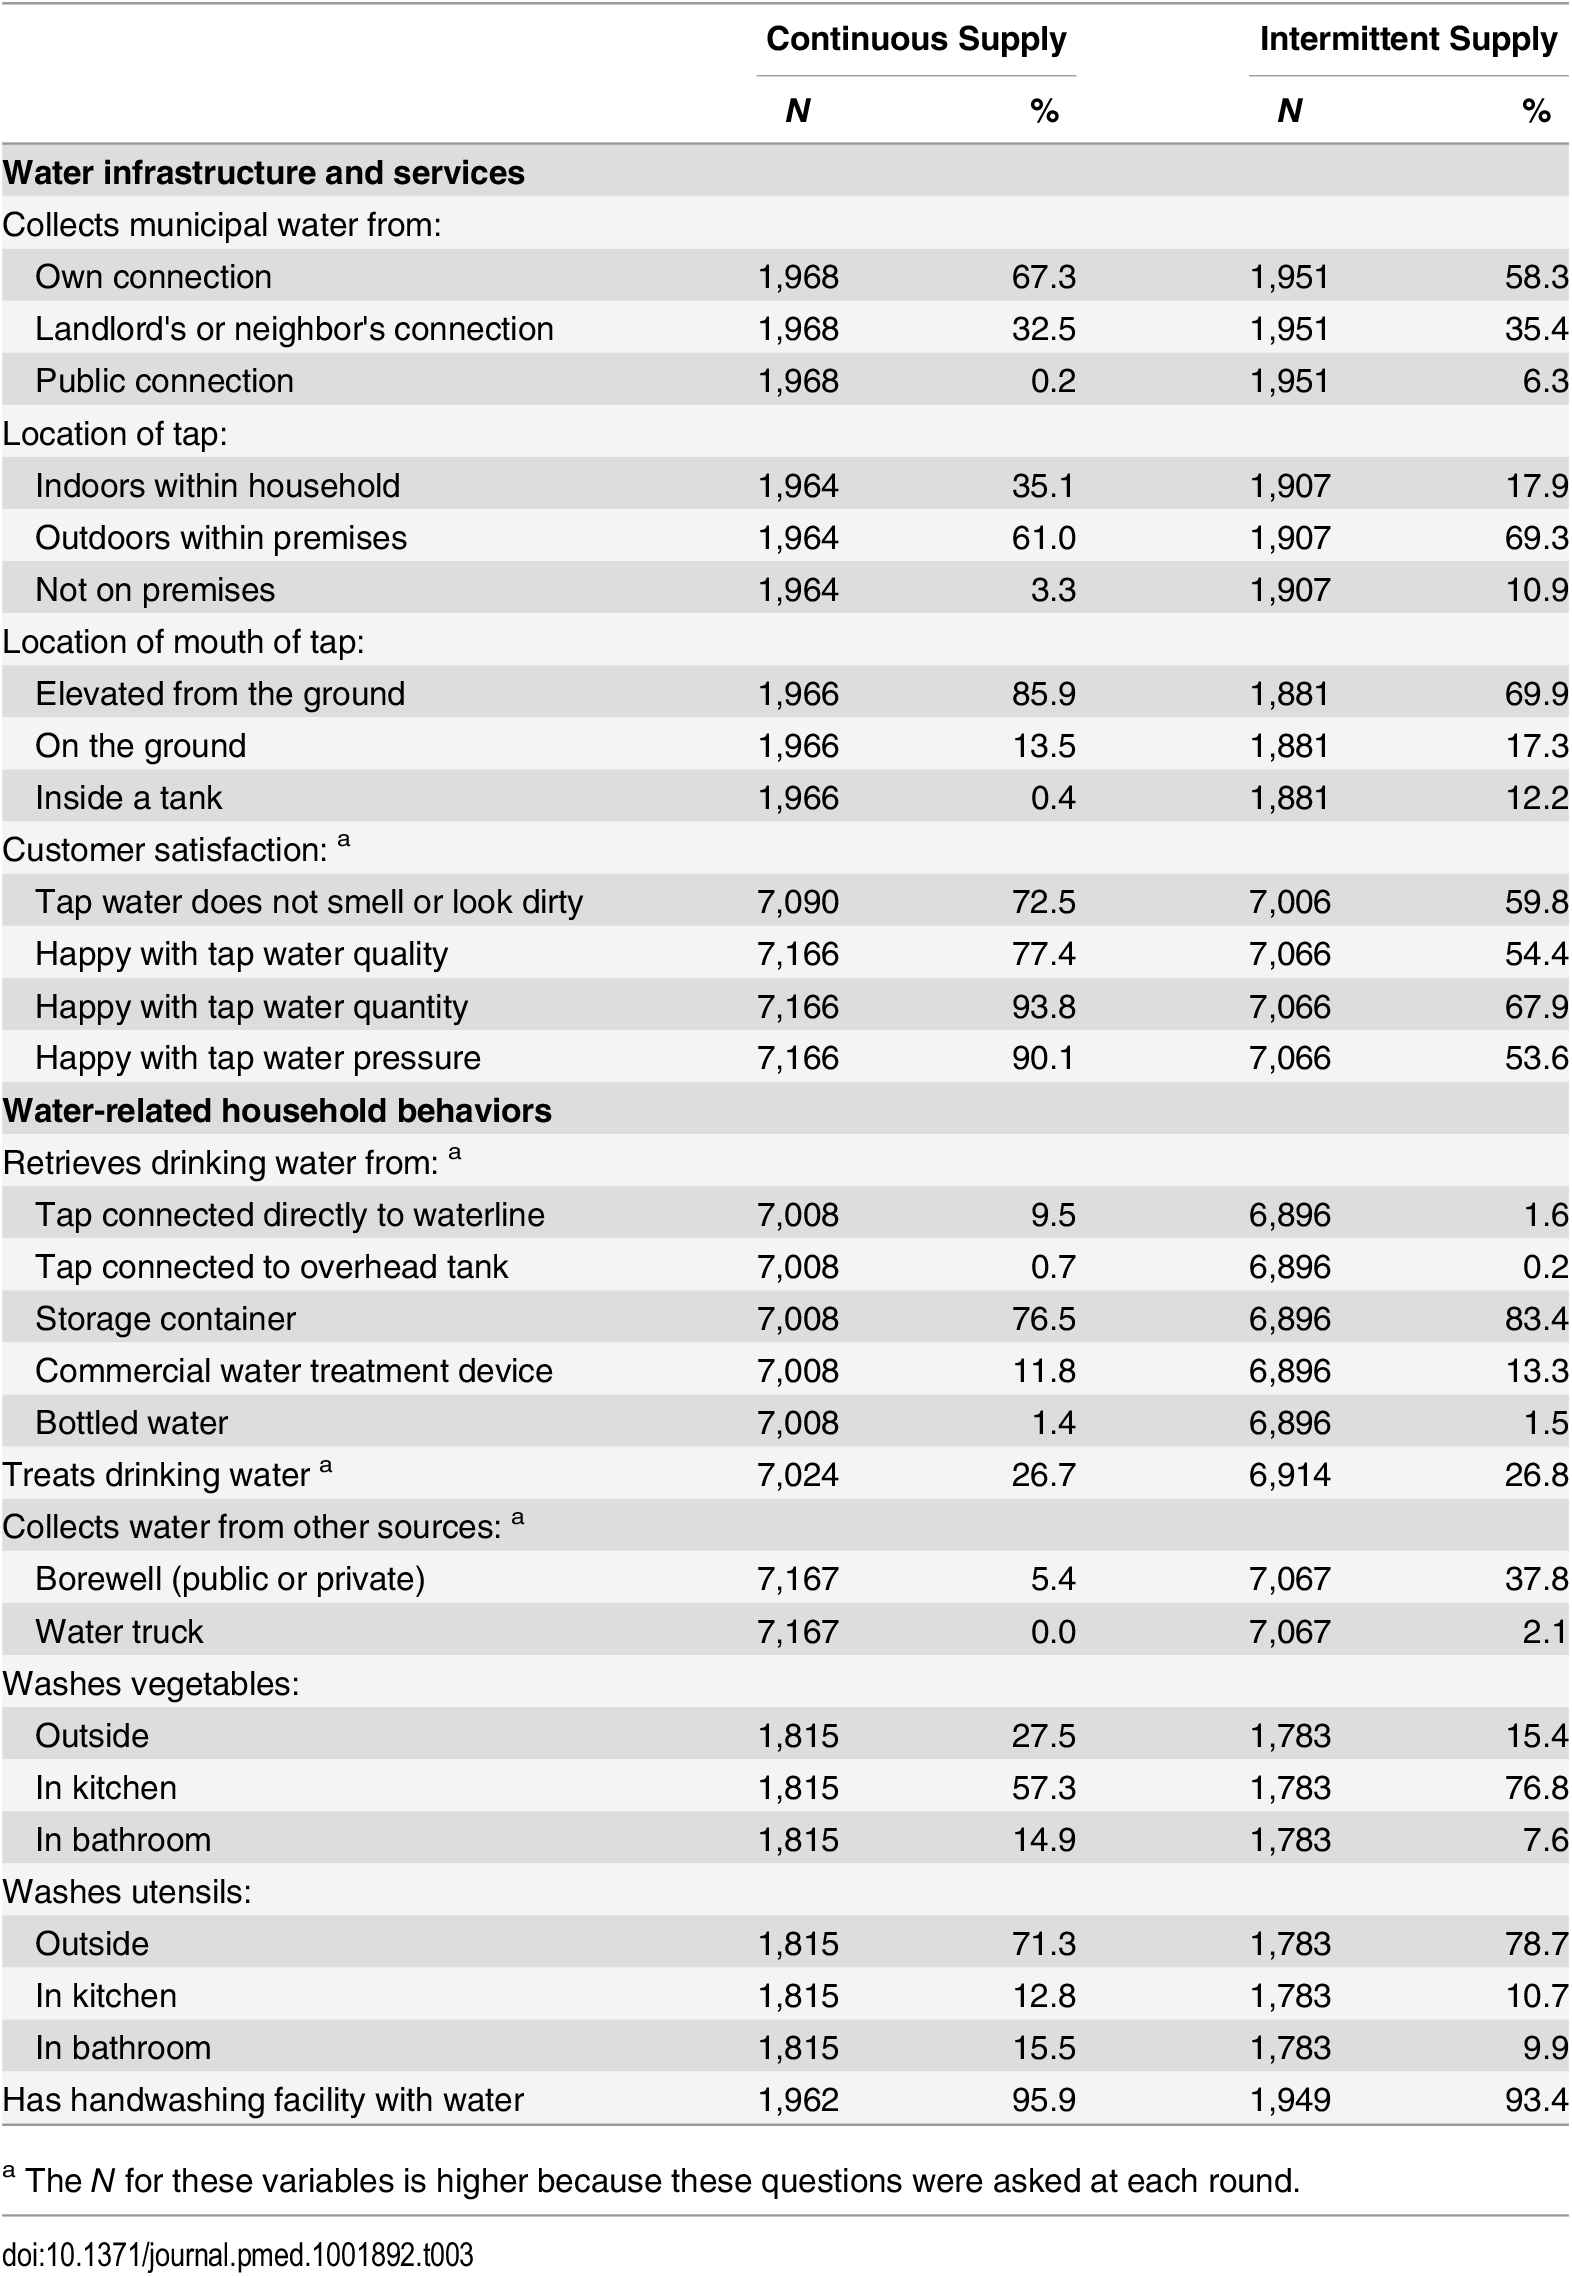 Water infrastructure and water-related household behaviors by study arm.